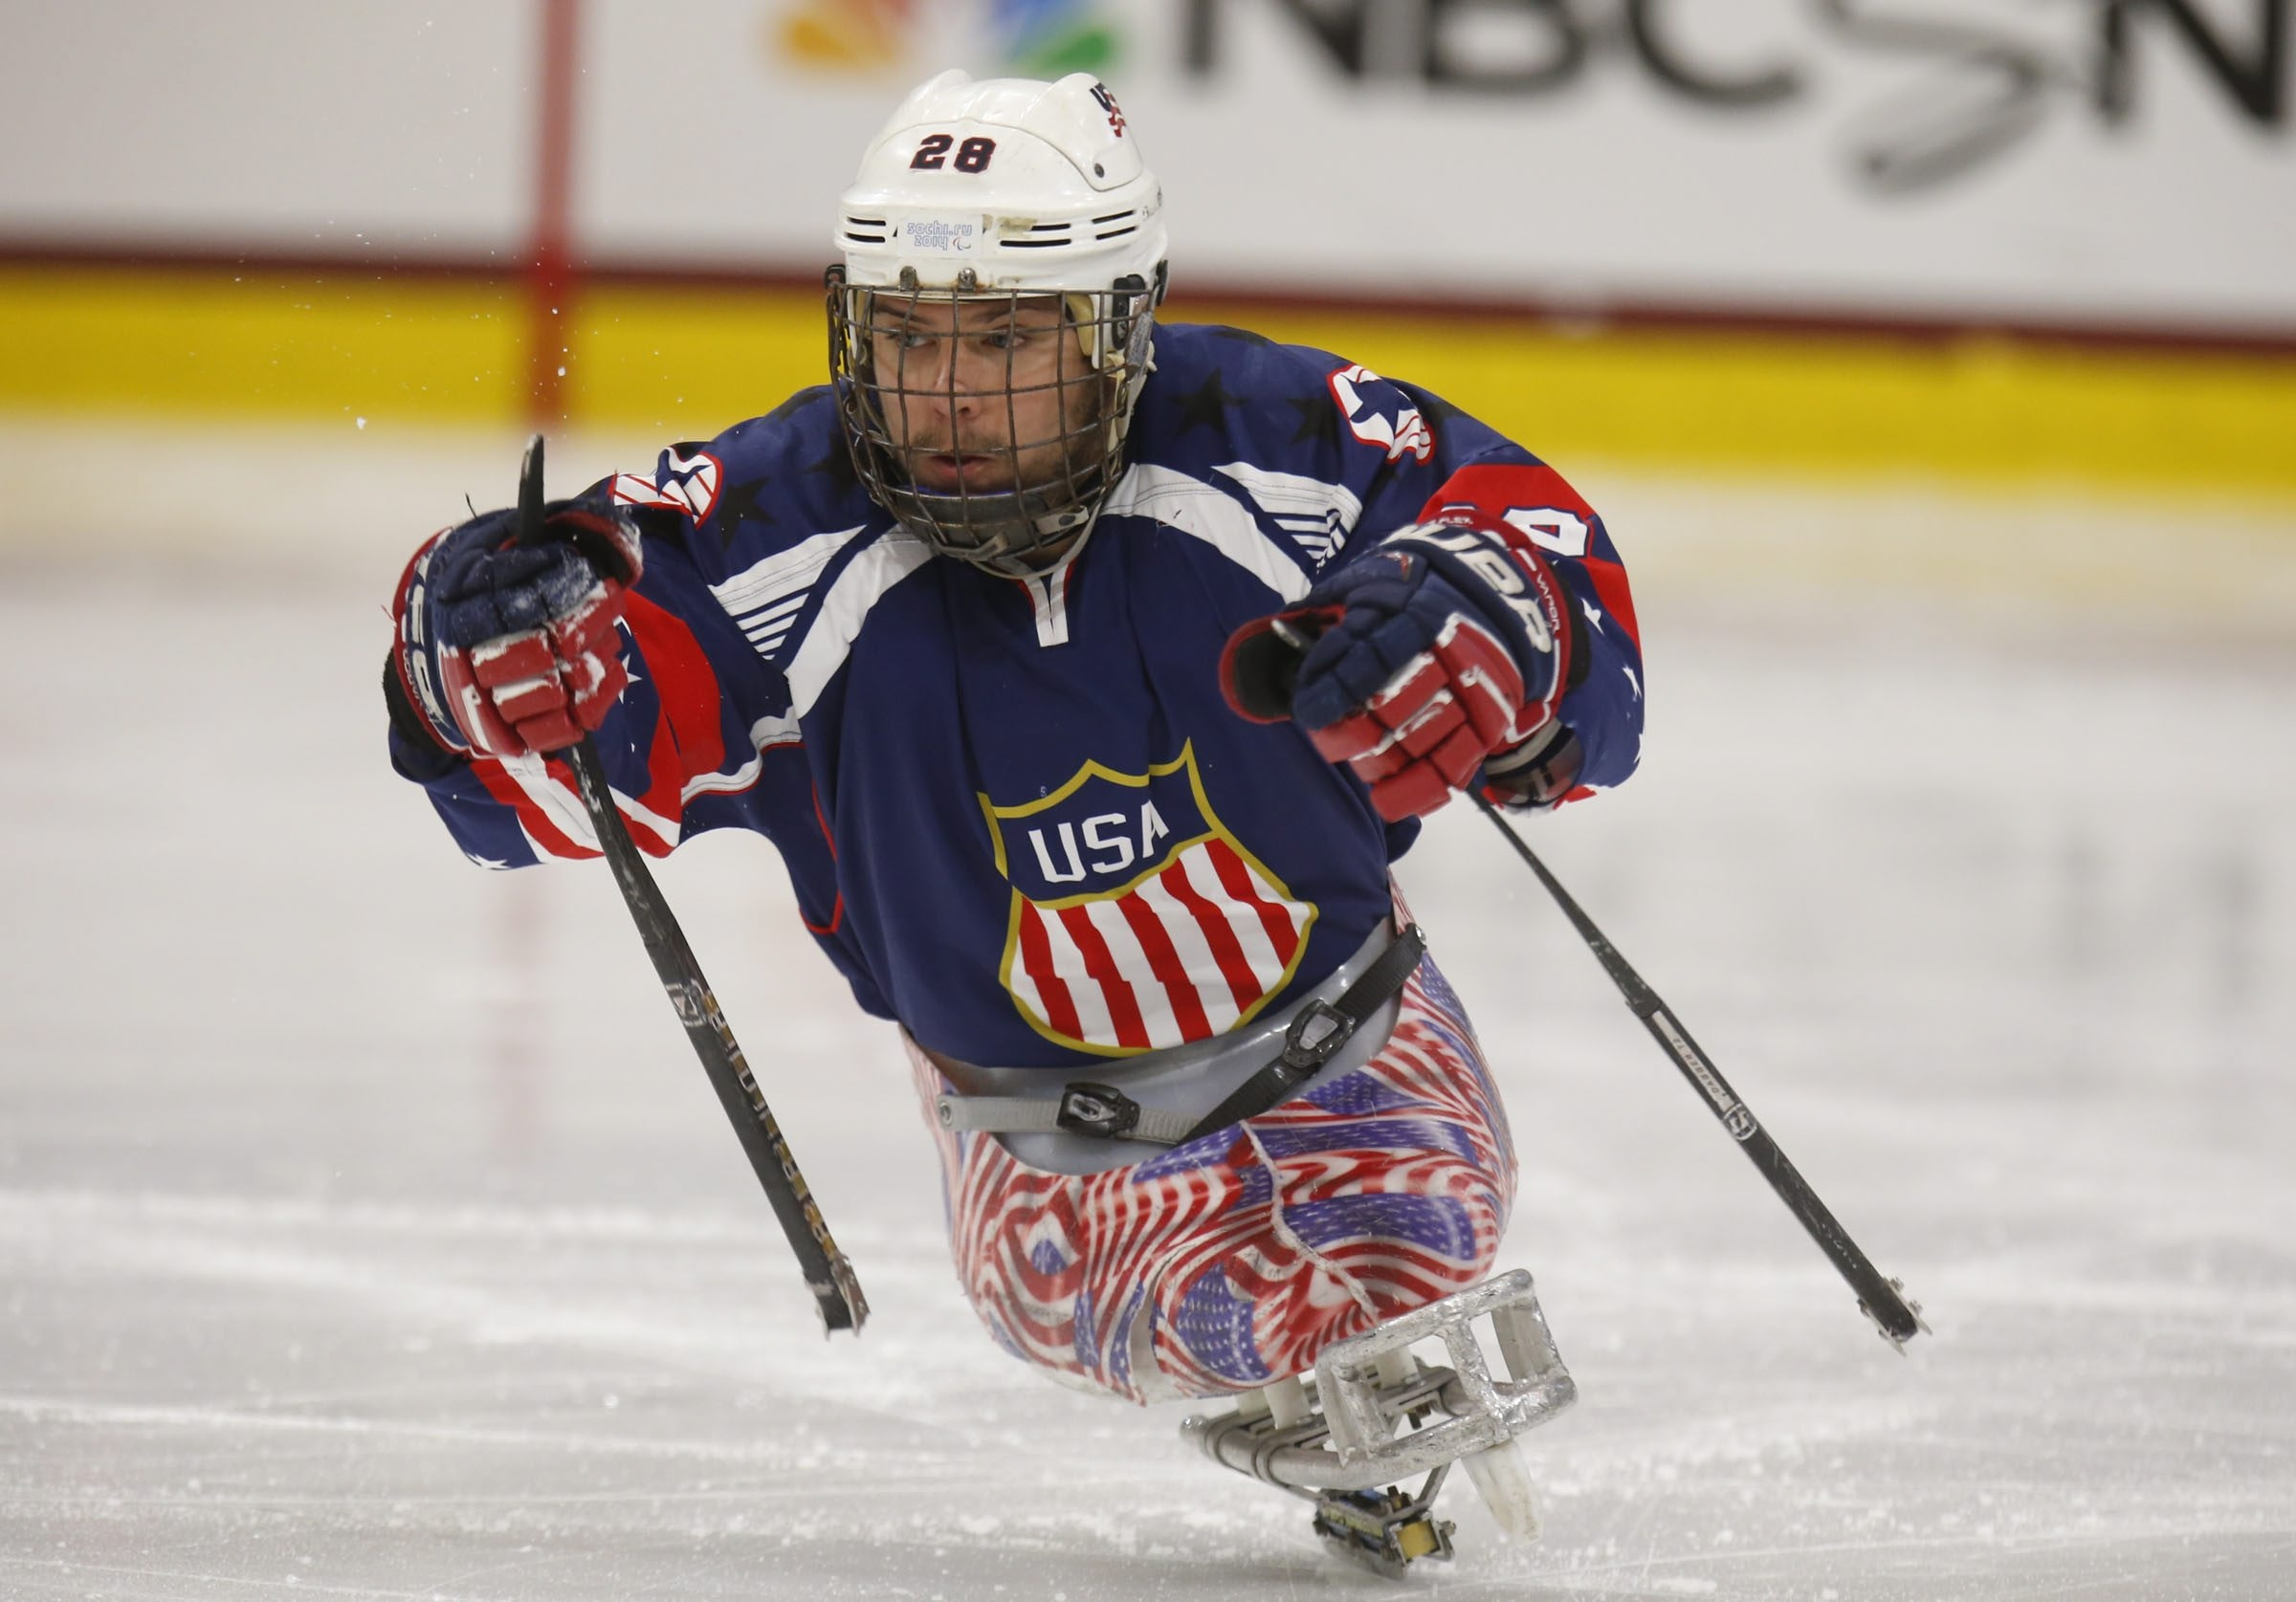 USA's Paul Schaus is one of four Purple Heart winners on his team's roster this year.